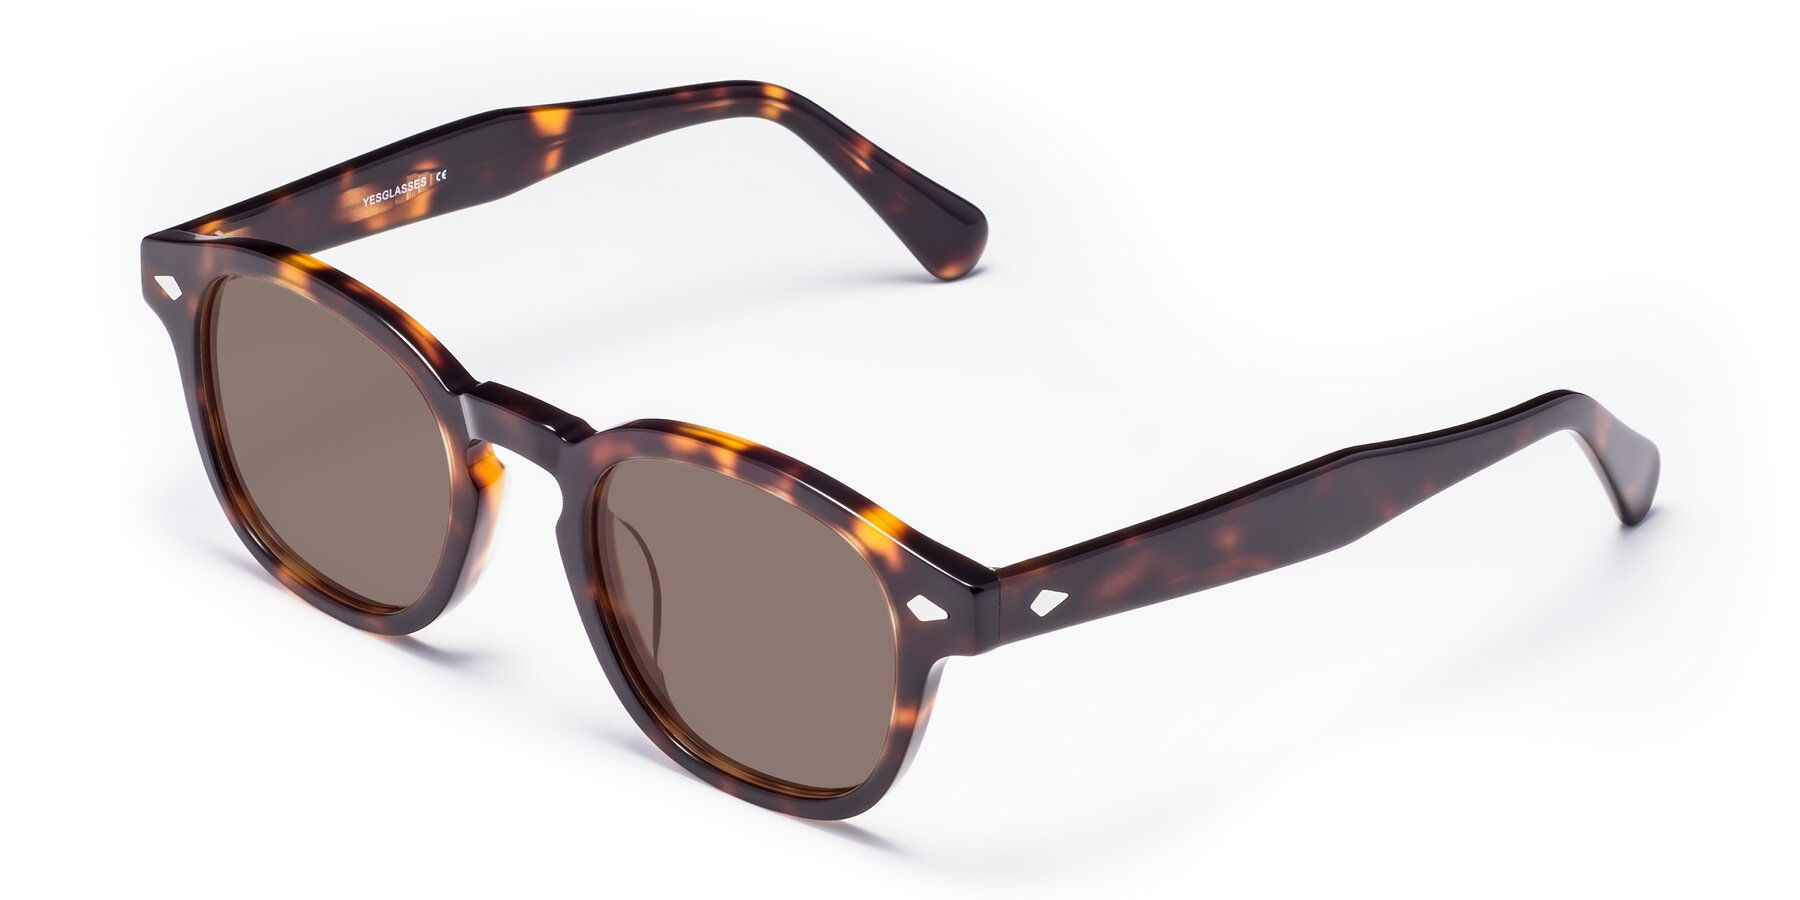 Angle of WALL-E in Tortoise with Medium Brown Tinted Lenses